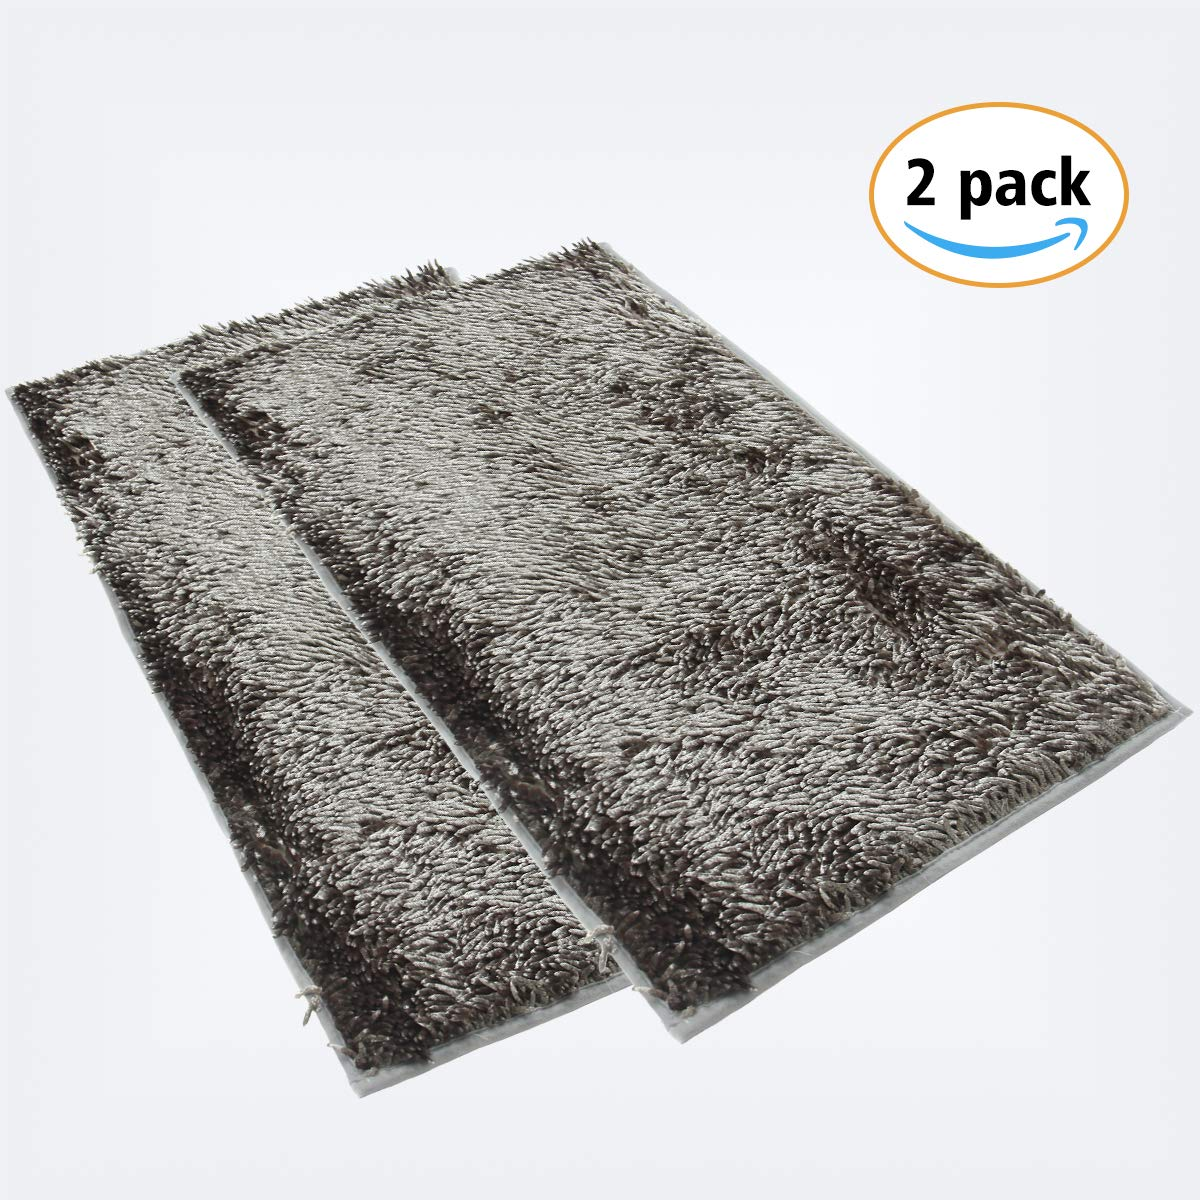 YOUKADA Original Shaggy Chenille Bathroom 2 Piece Rug Set Includes Mat Contoured for Toilet and 20X32 inch Carpet, Machine Wash/Dry, Perfect Plush Mats for Tub, Shower, and Bath Room